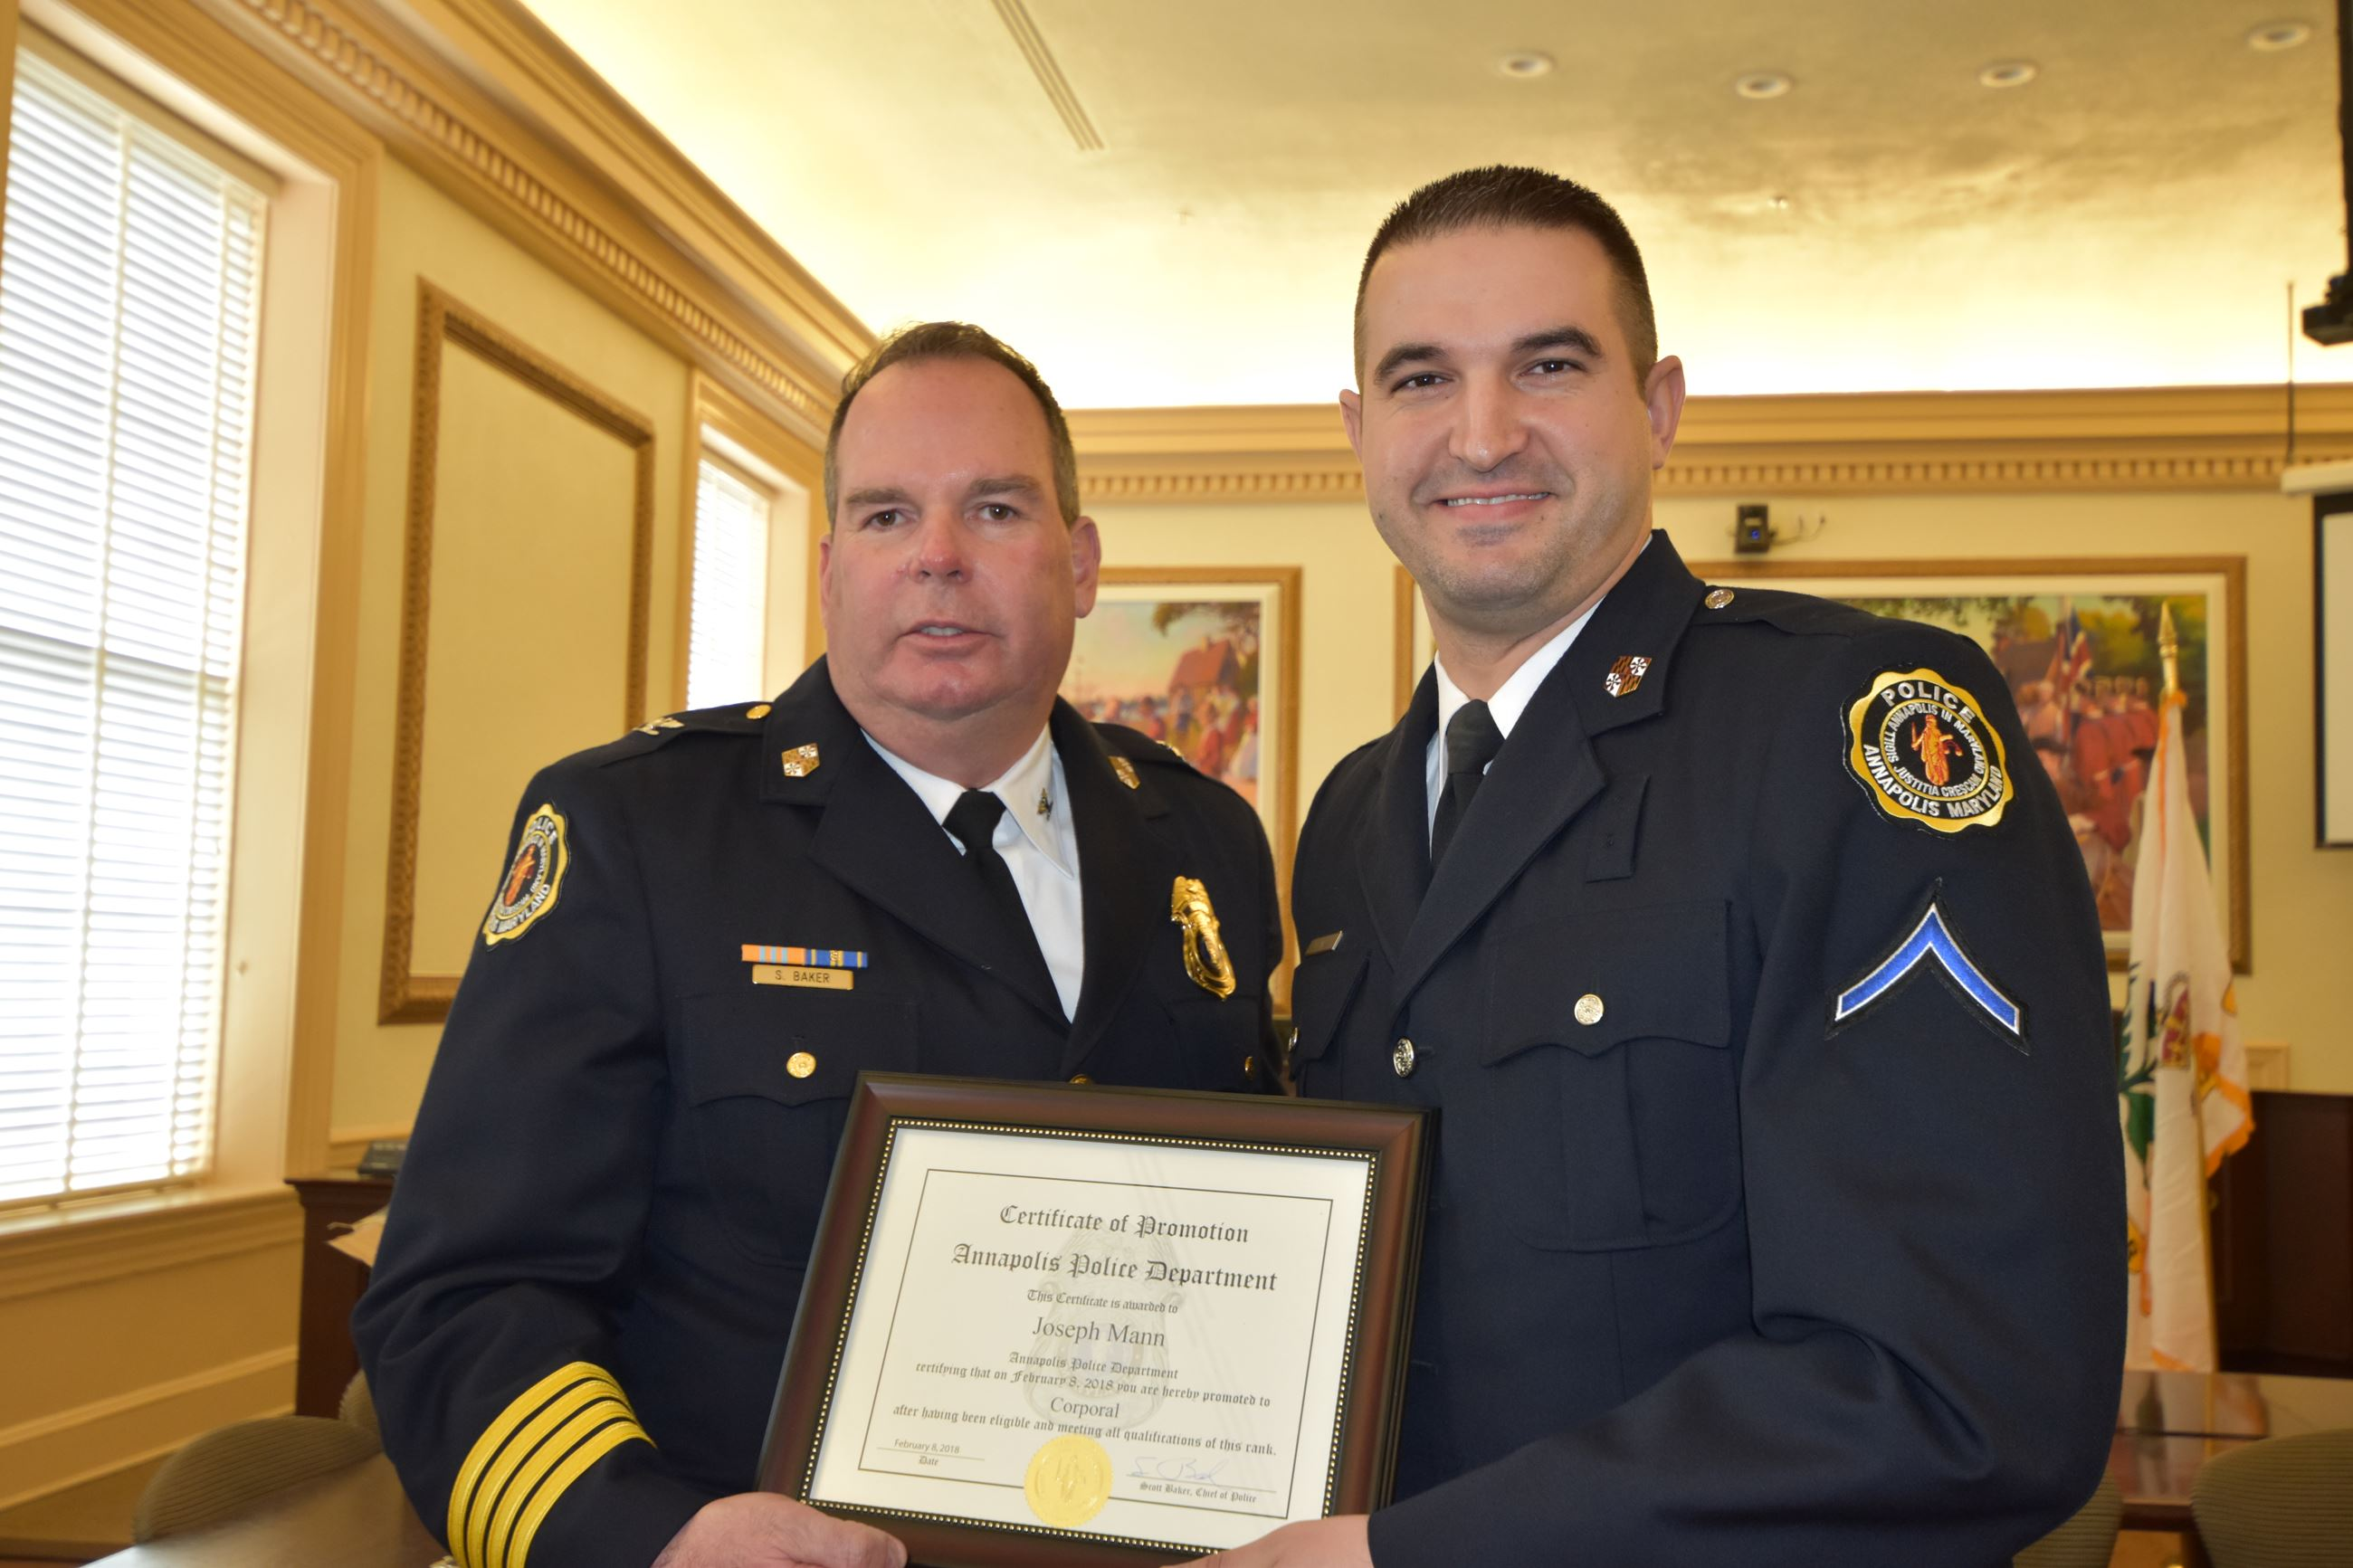 Officer Awards & Promotions   Annapolis, MD